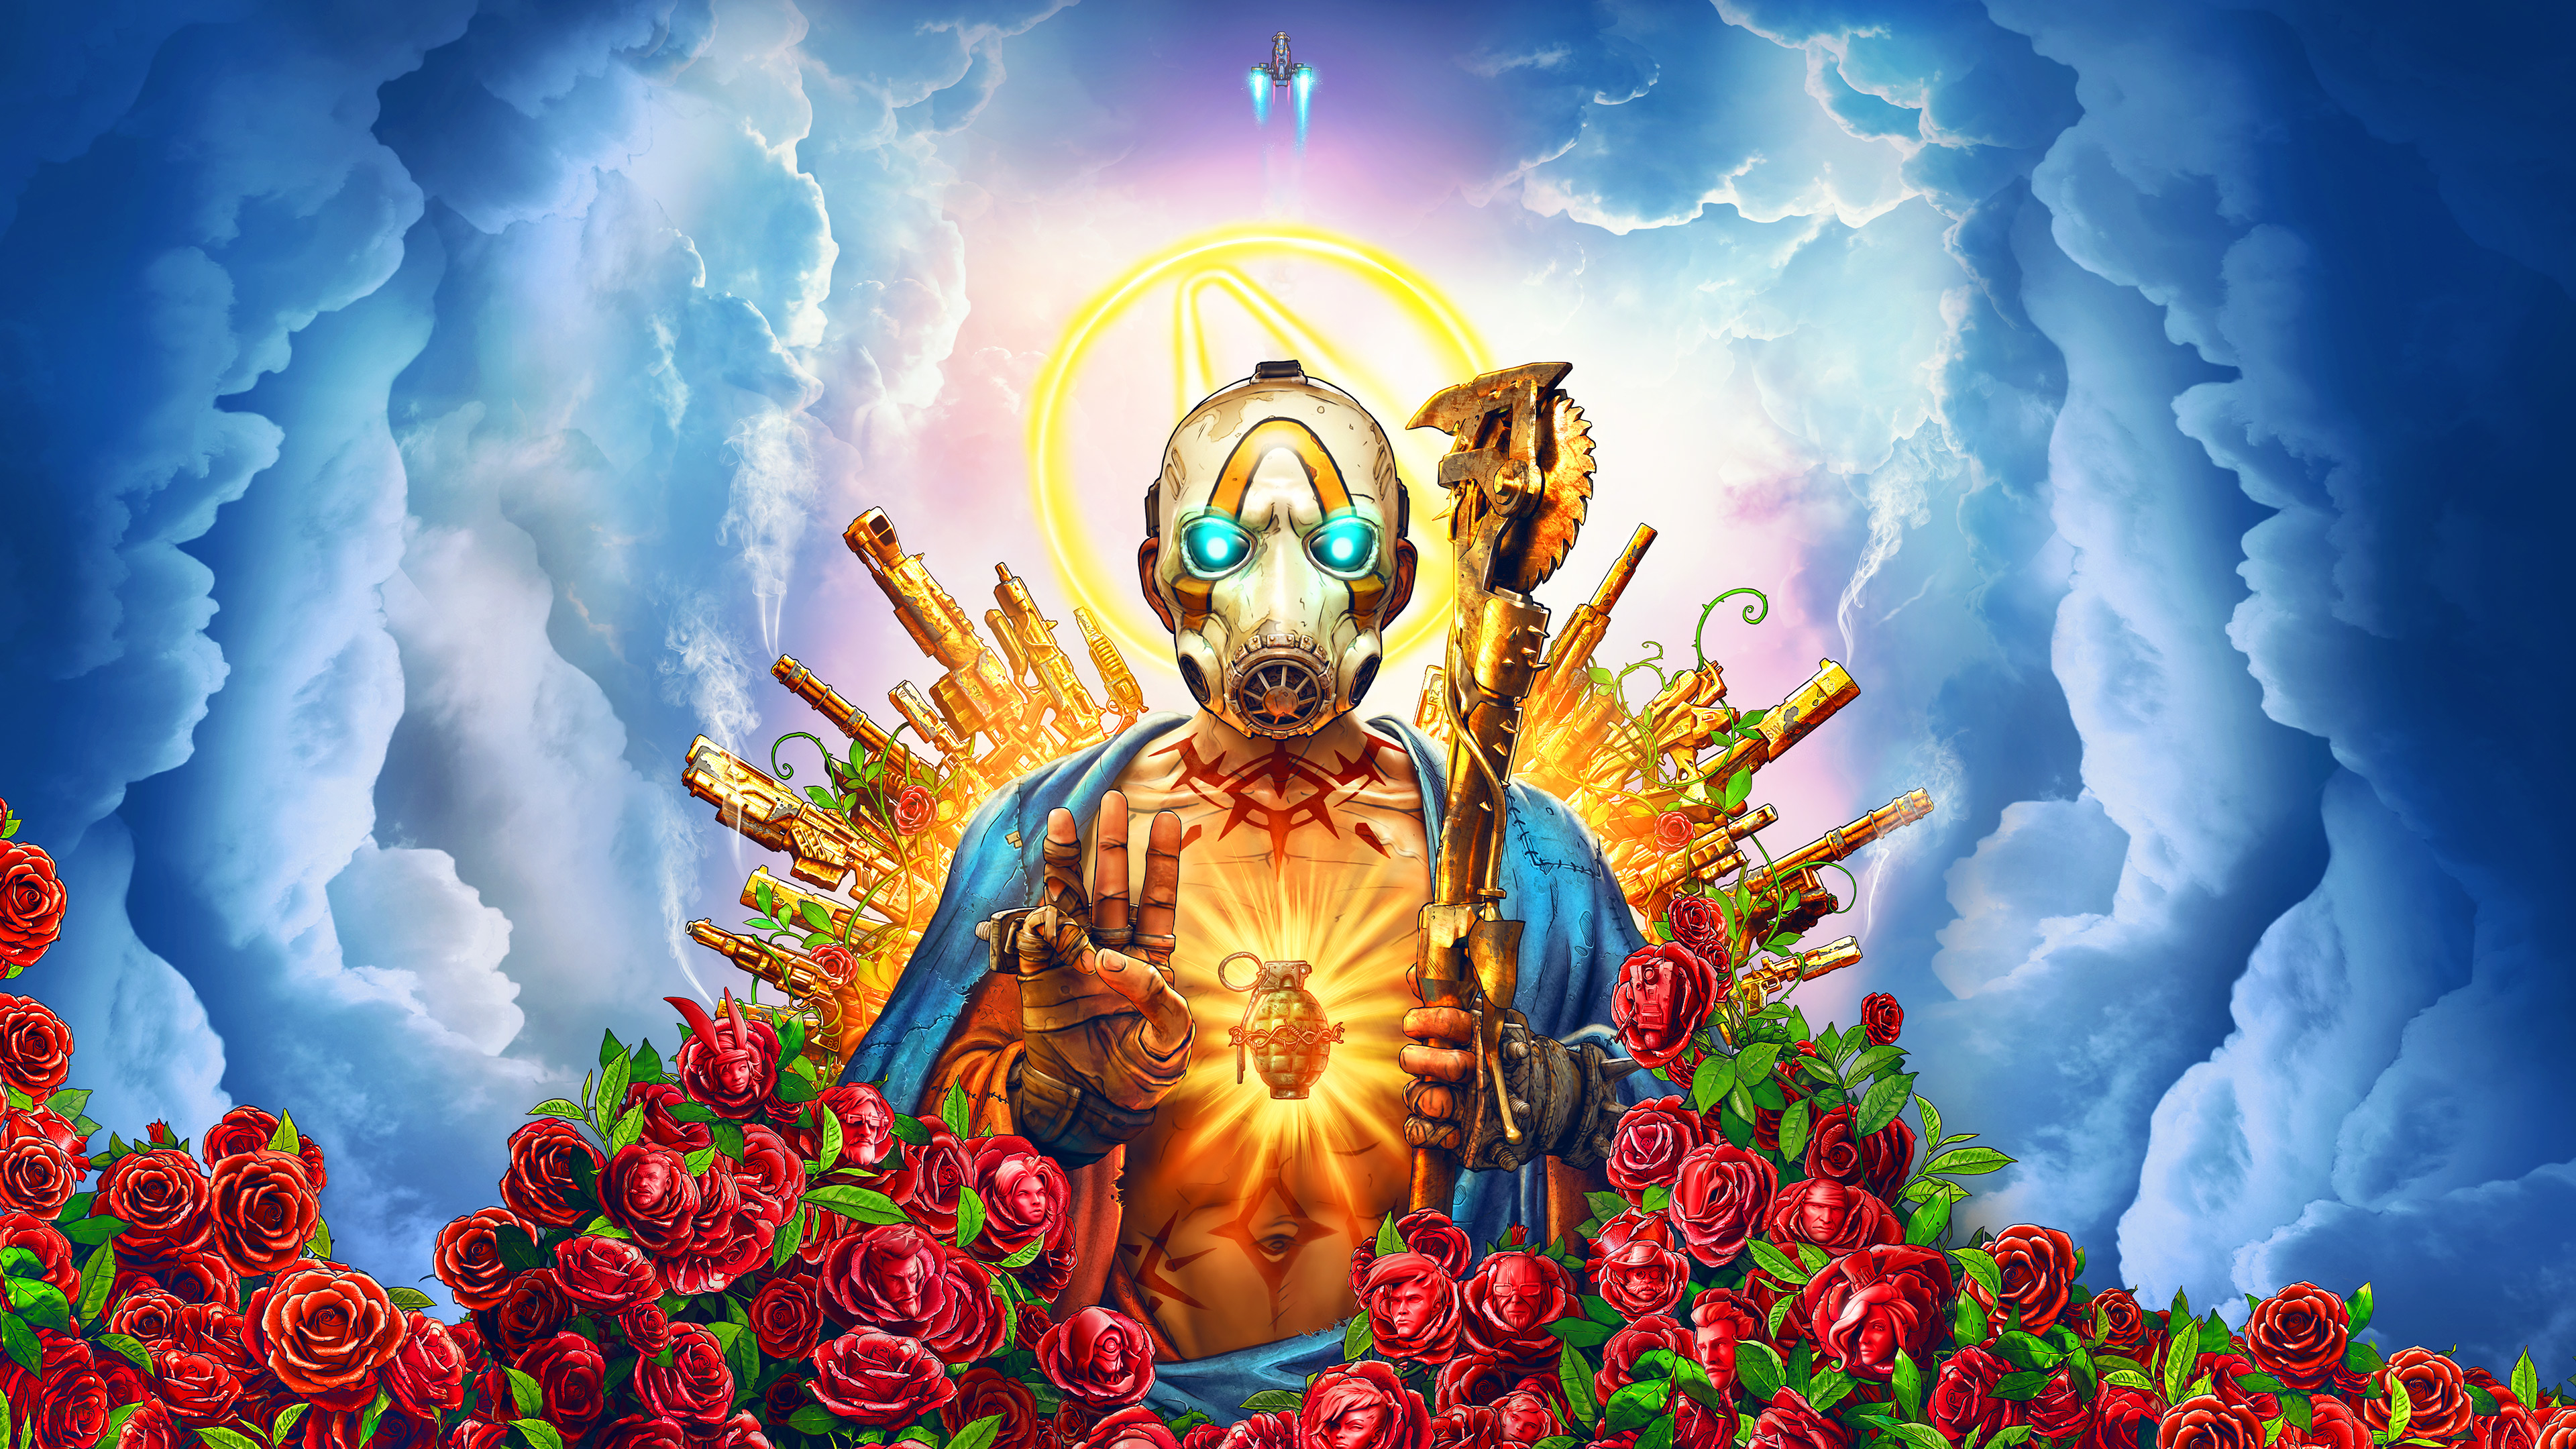 4k Borderlands 3 Wallpaper Hd Games 4k Wallpapers Images Photos And Background